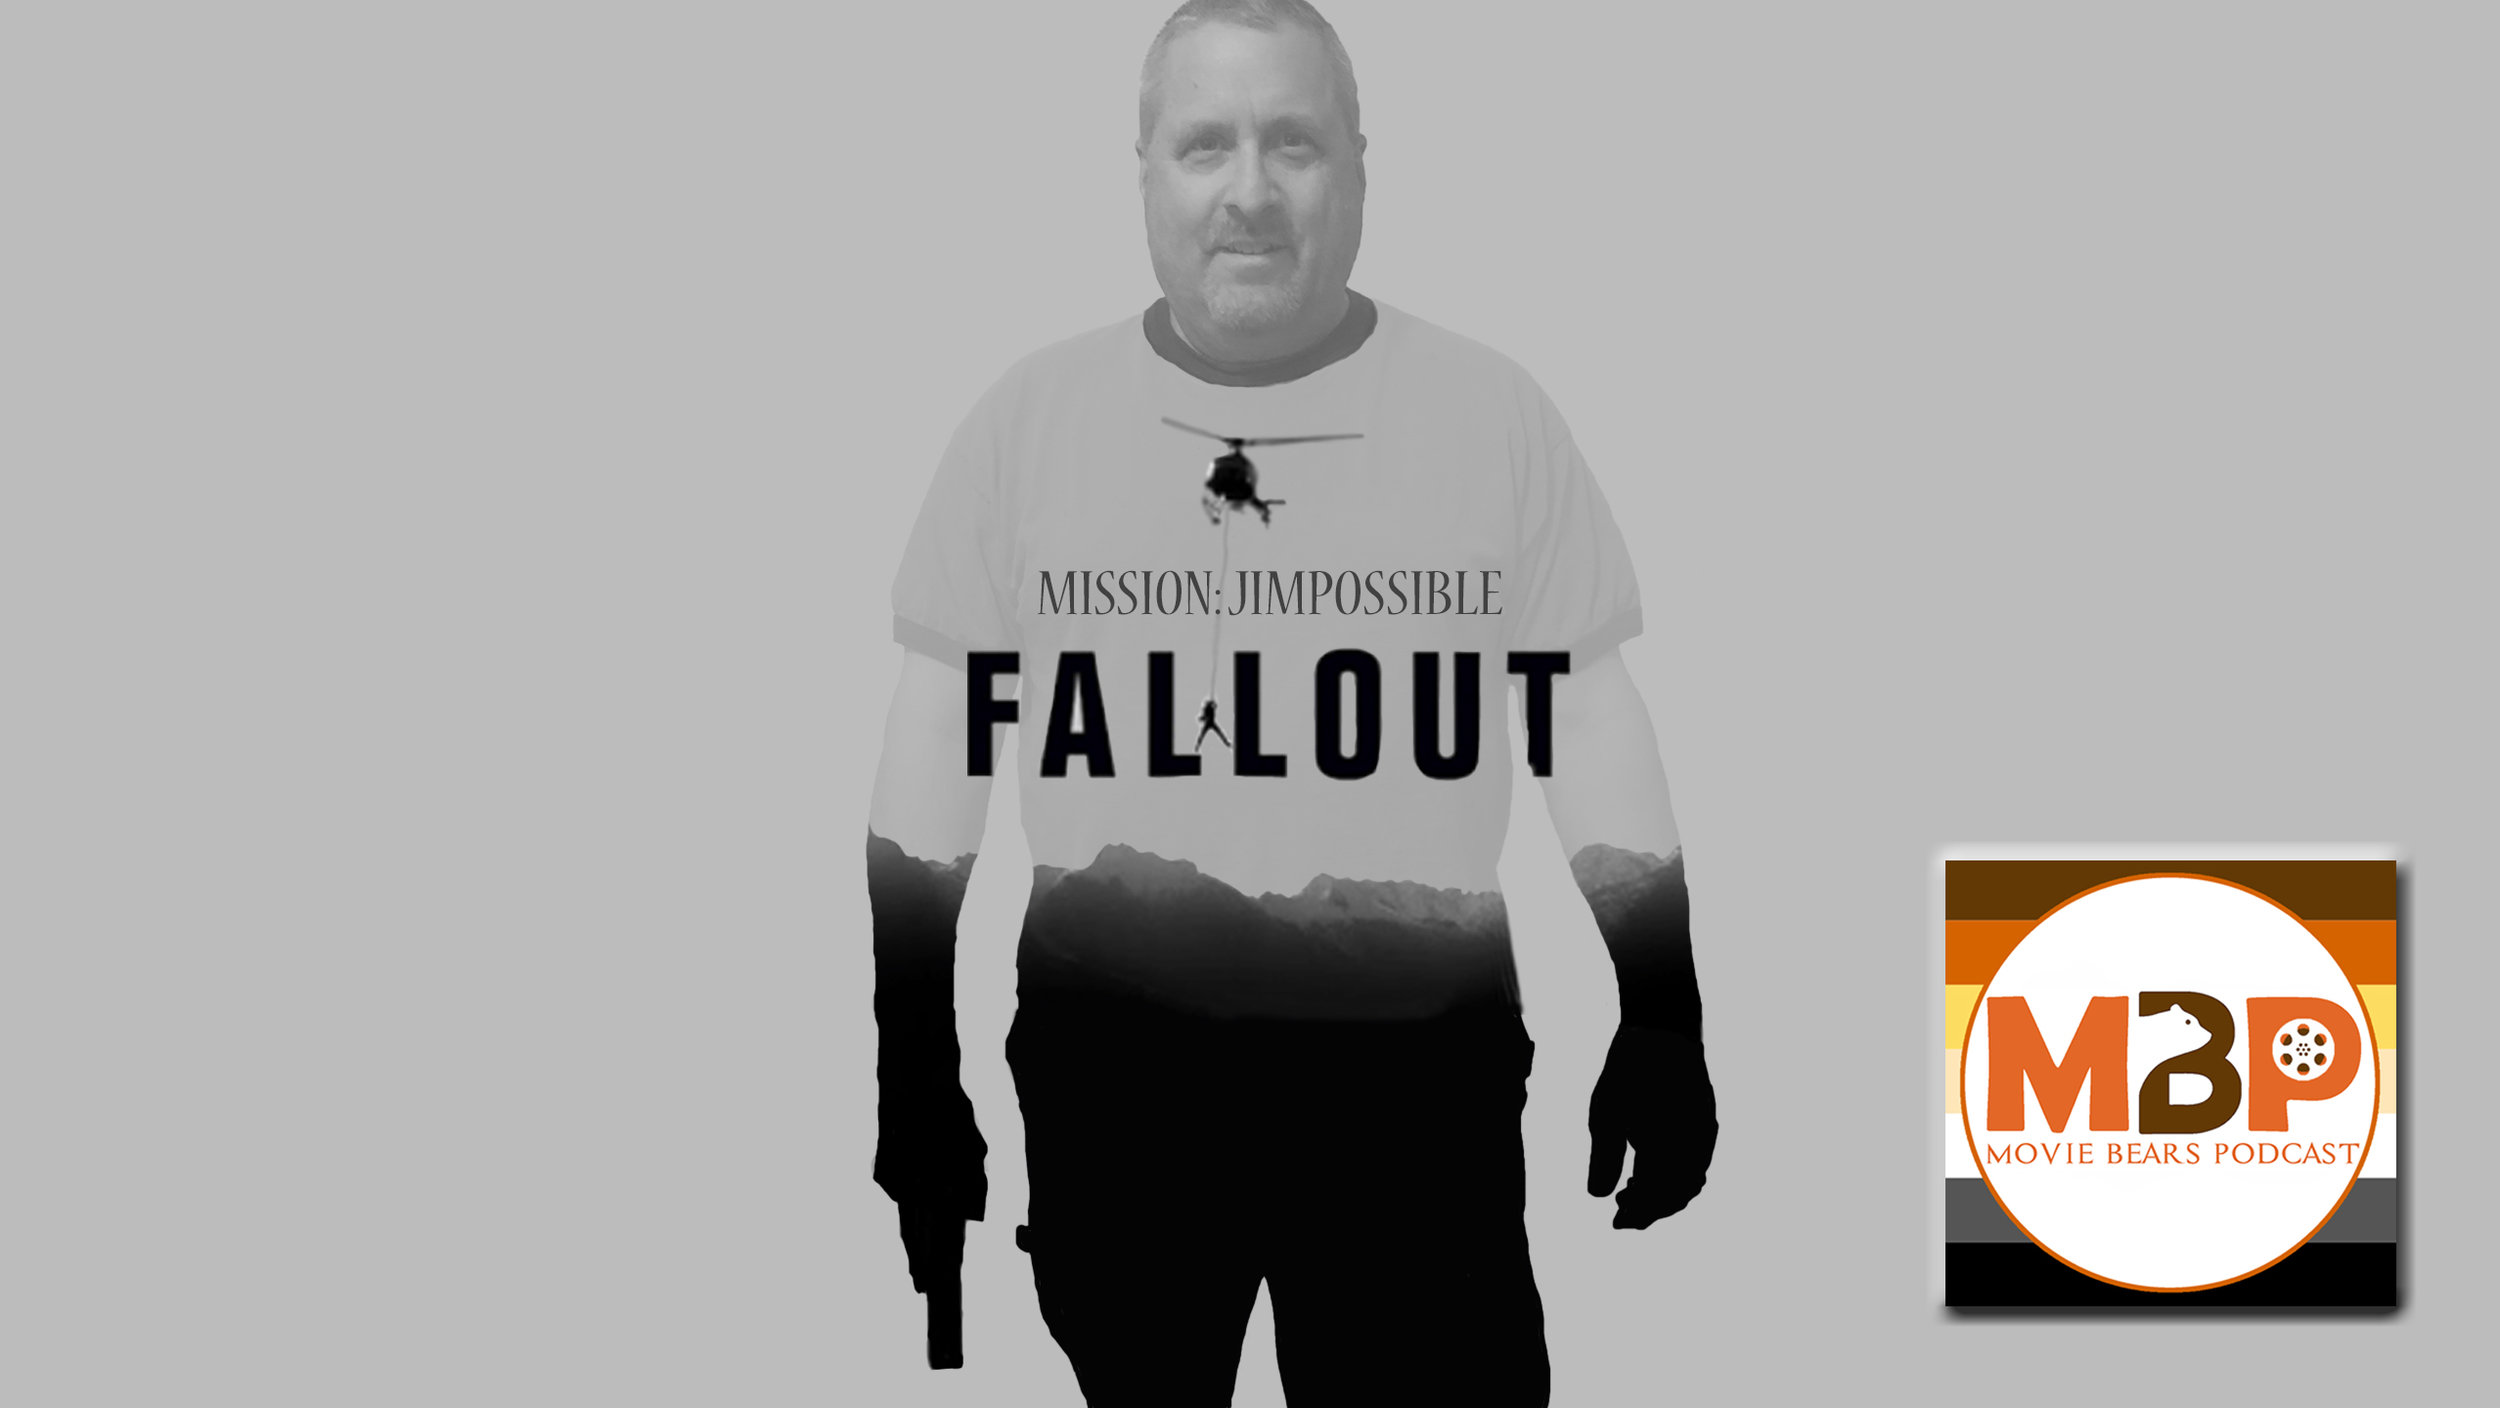 MBP e290 - 'Mission: Impossible - Fallout' and 'Eighth Grade' (8/7/18)    Your mission, should you choose to accept it, is to listen to this week's episode of the Movie Bears Podcast, in which we review Tom Cruise's latest spy thriller 'Mission: Impossible - Fallout' and A24's coming-of-age comedy 'Eighth Grade.' This message will self destruct in 5... 4... 3... 2...